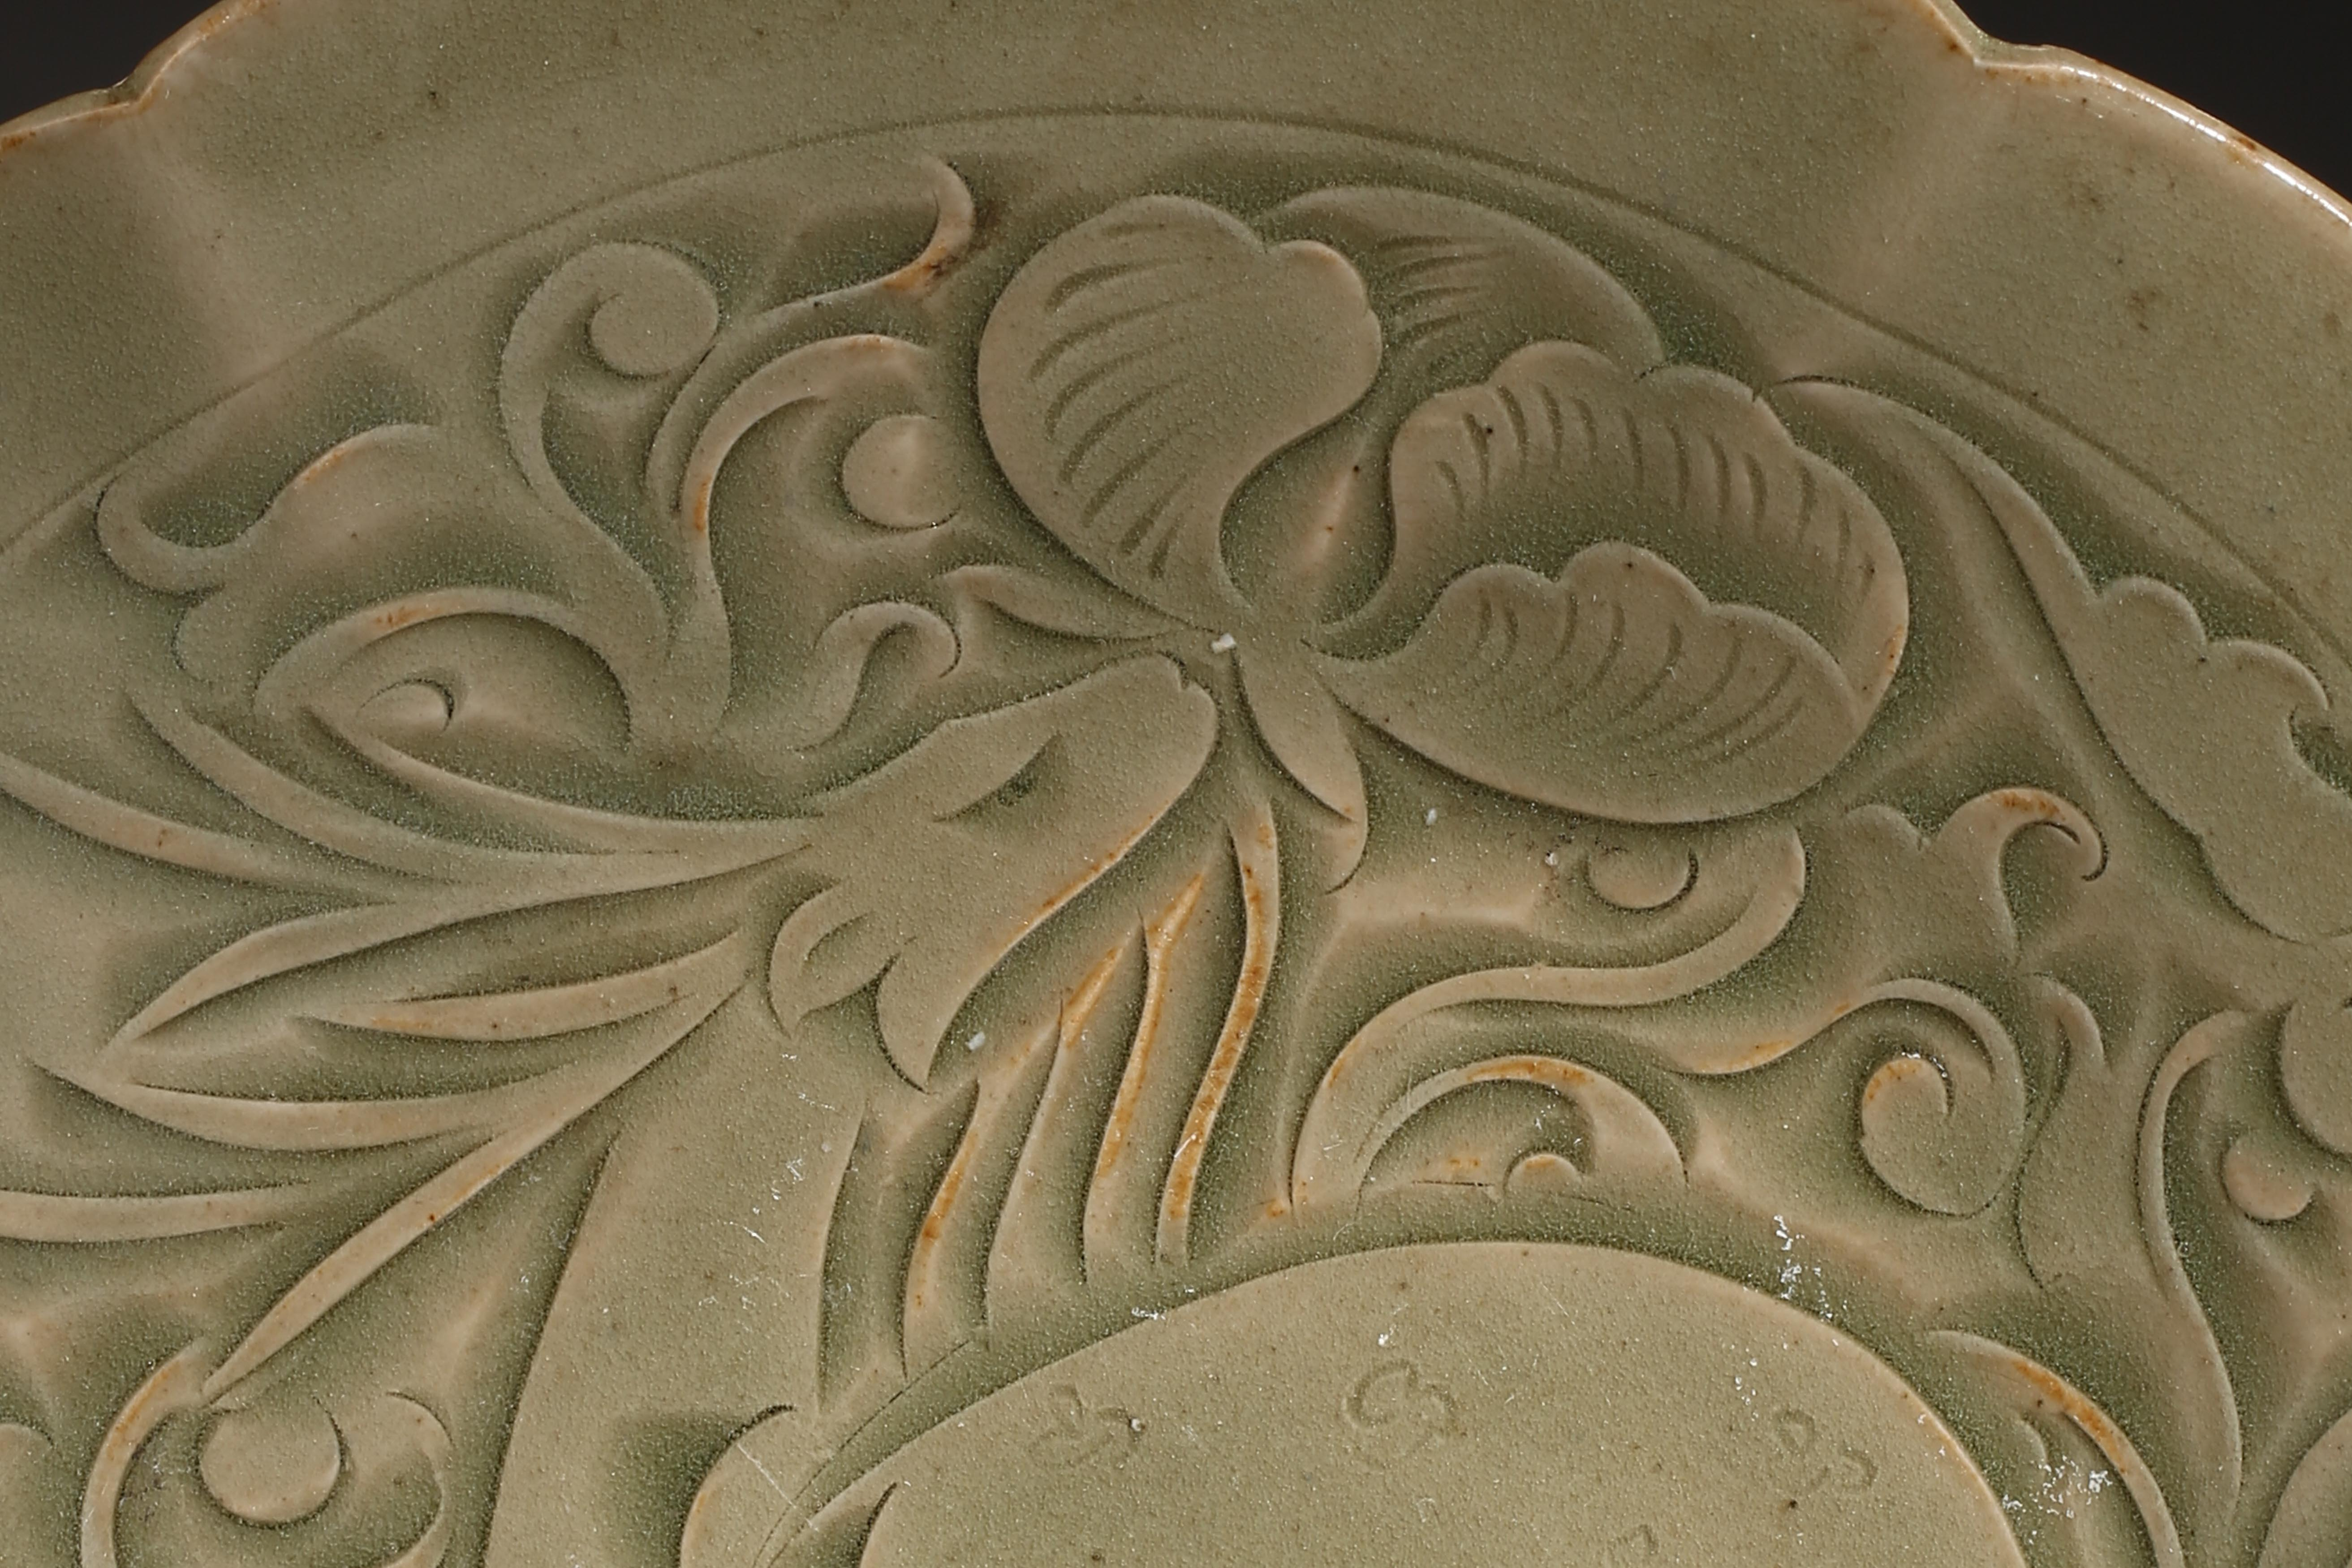 YAOZHOU KILN PLATE WITH RAFFITO DESIGN, NORTHERN SONG DYNASTY, CHINA - Image 4 of 9